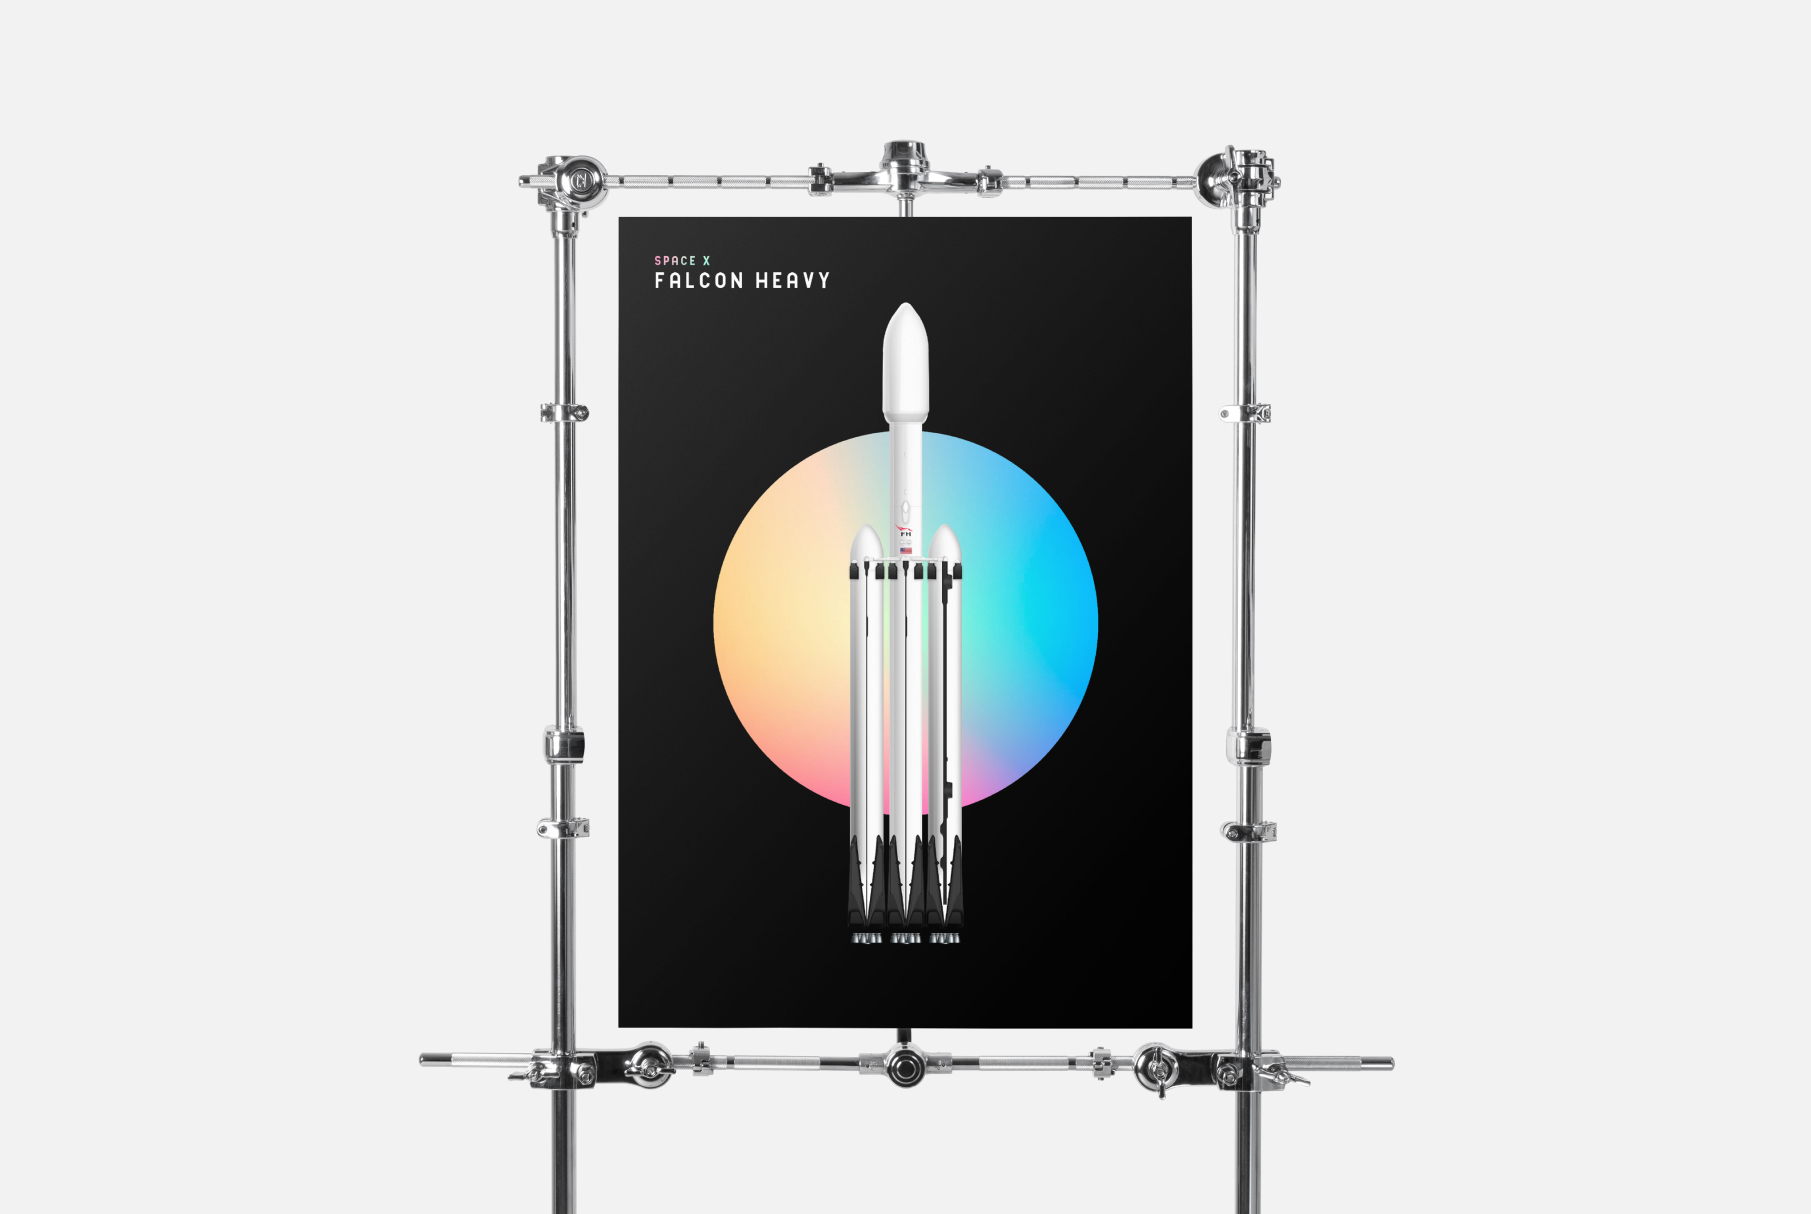 Space X Poster